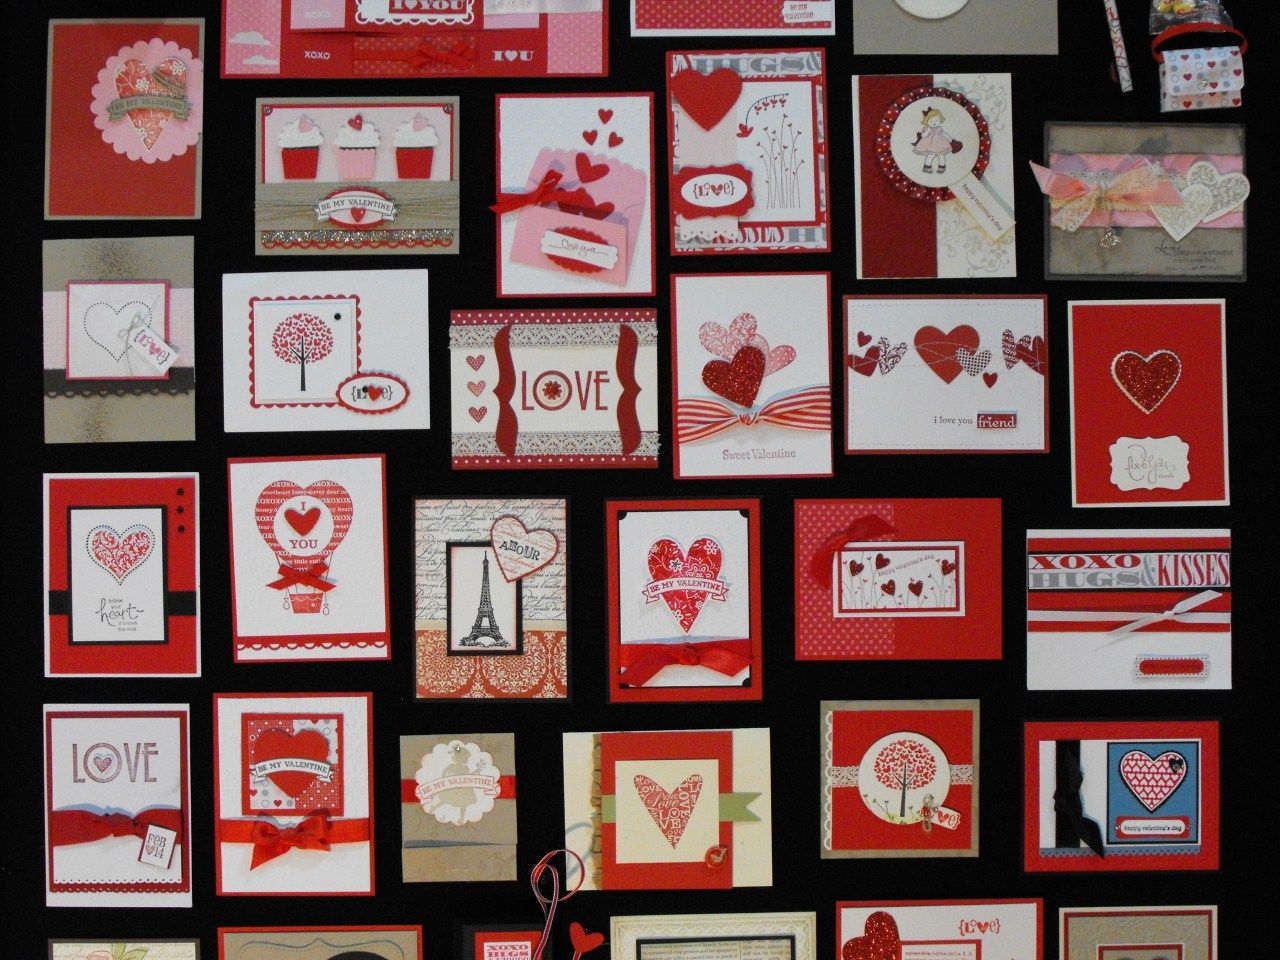 Card ideas from the 2011 Stampin' Up! convention (love the cupcakes on the upper left with the hearts instead of cherries!)